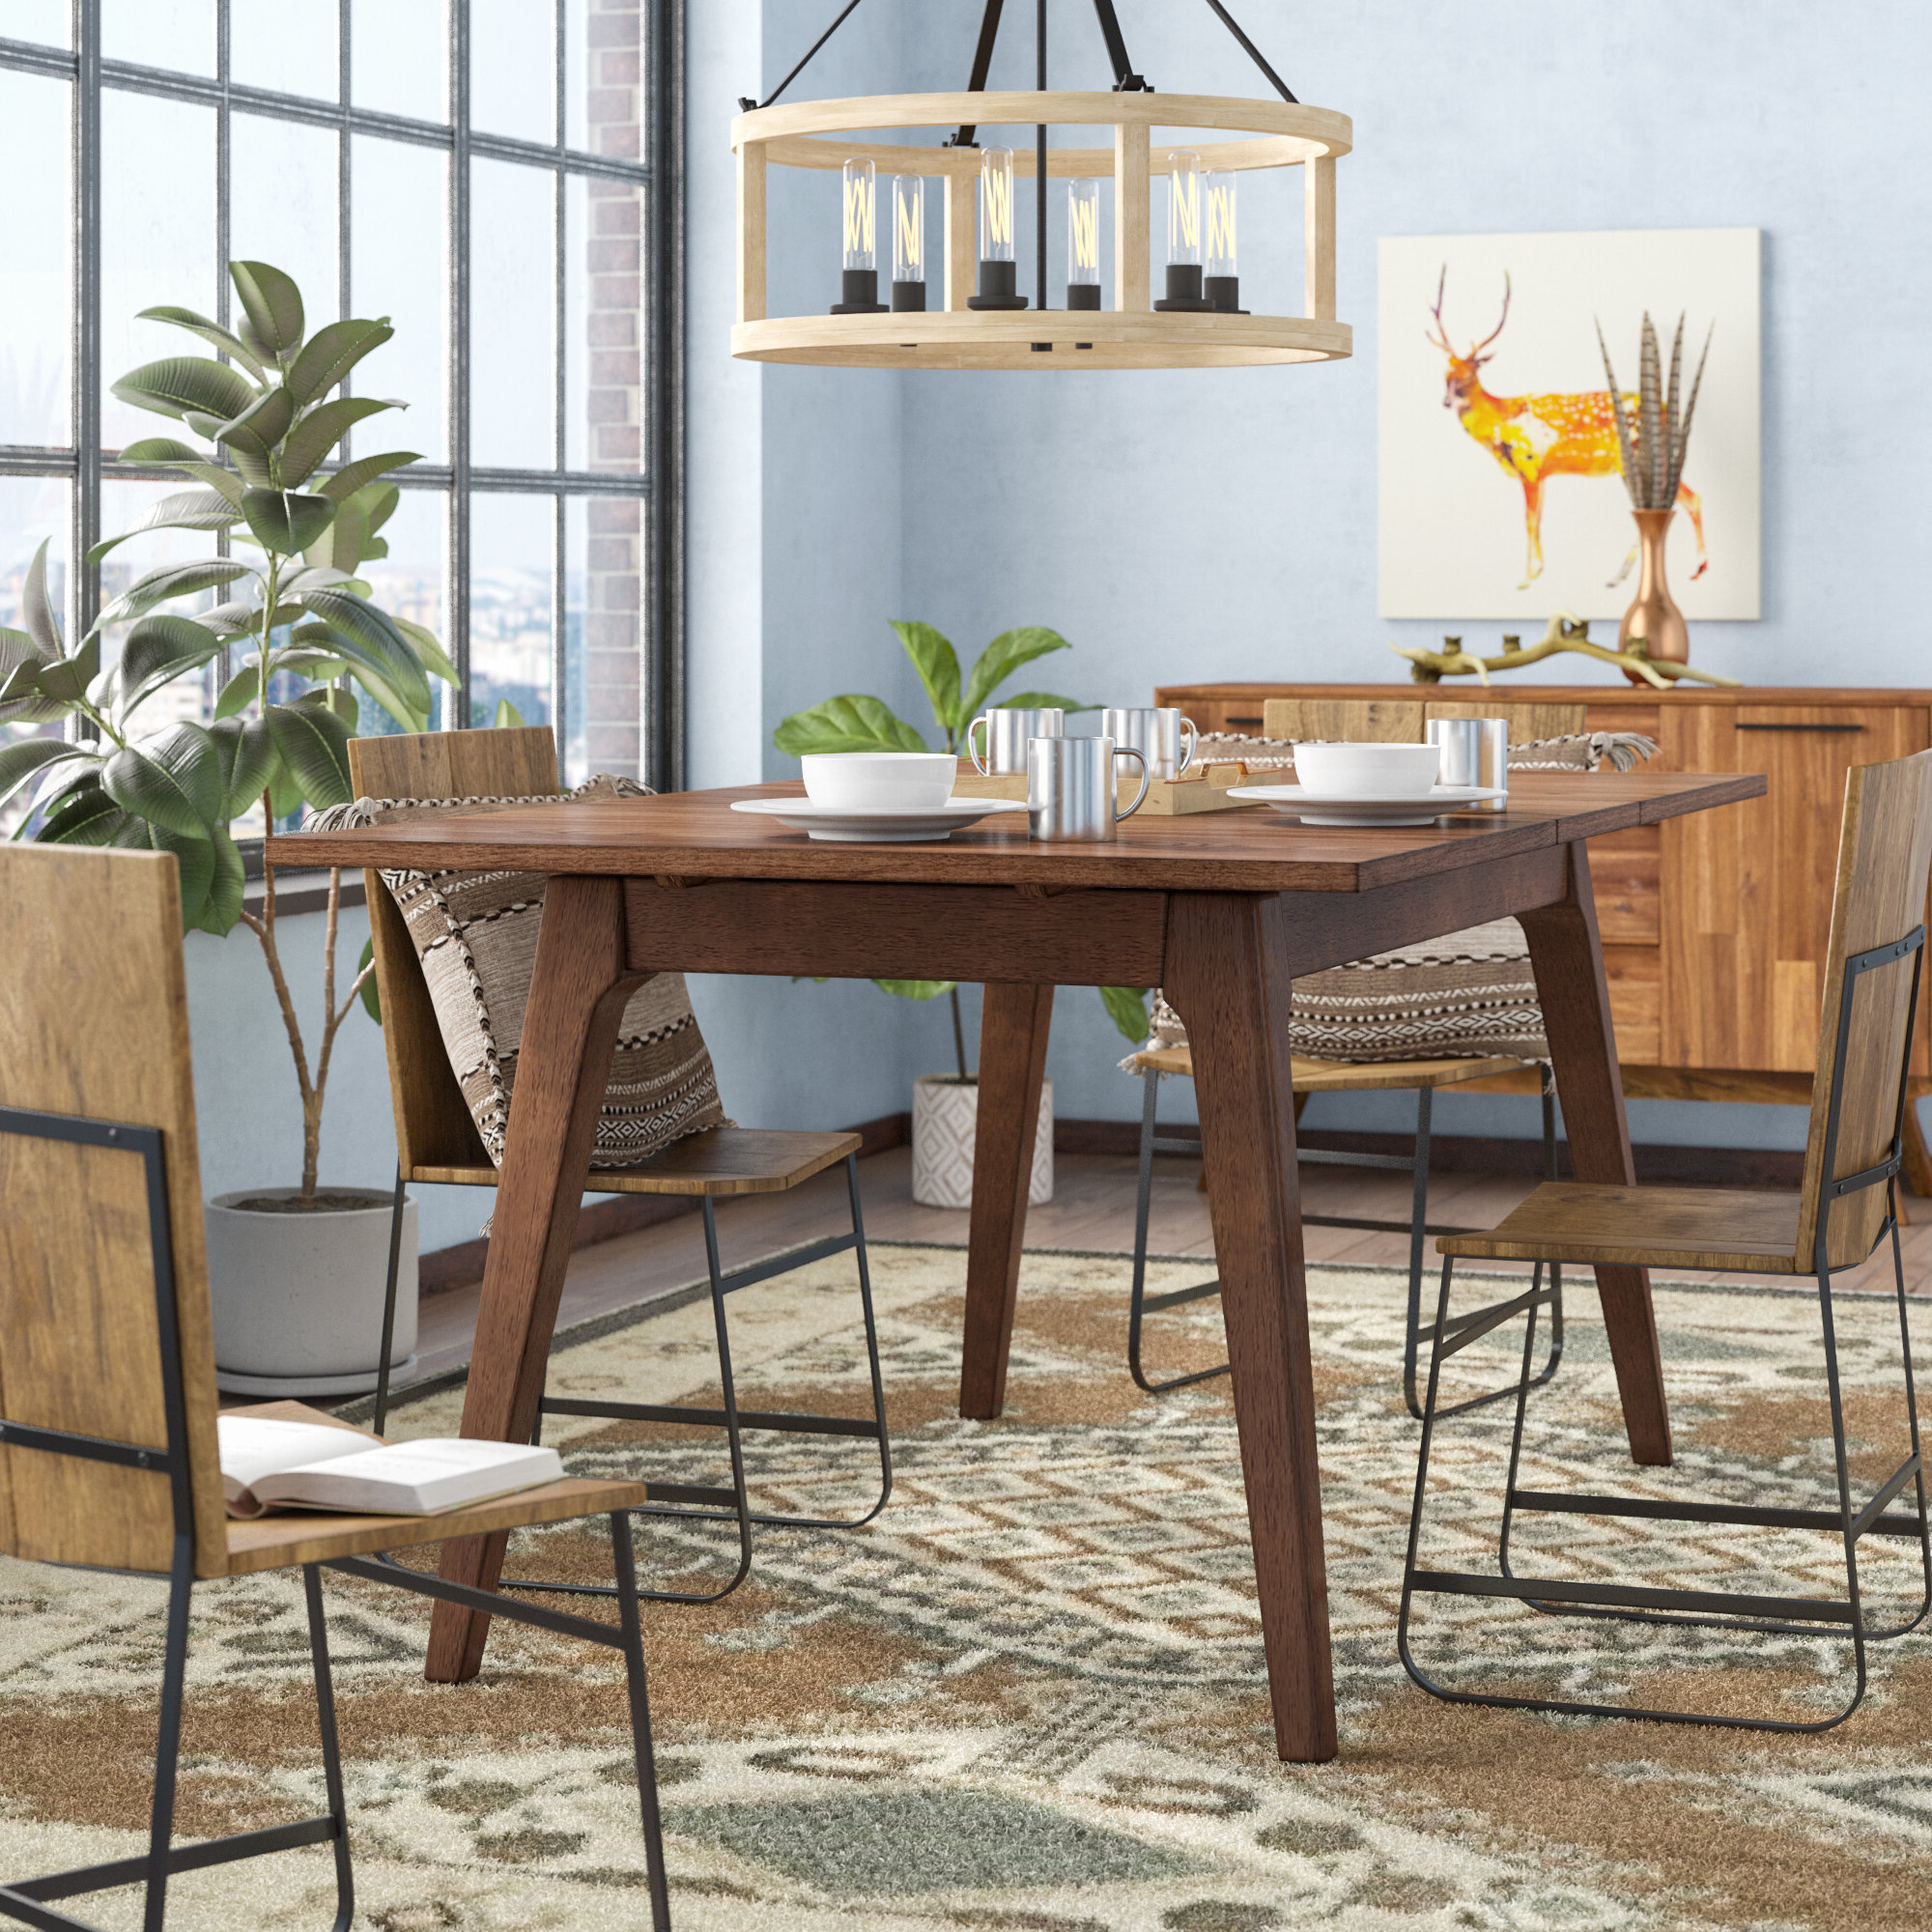 Most Recent Transitional 4 Seating Drop Leaf Casual Dining Tables Regarding Union Rustic Lehto Drop Leaf Dining Table & Reviews (View 12 of 25)